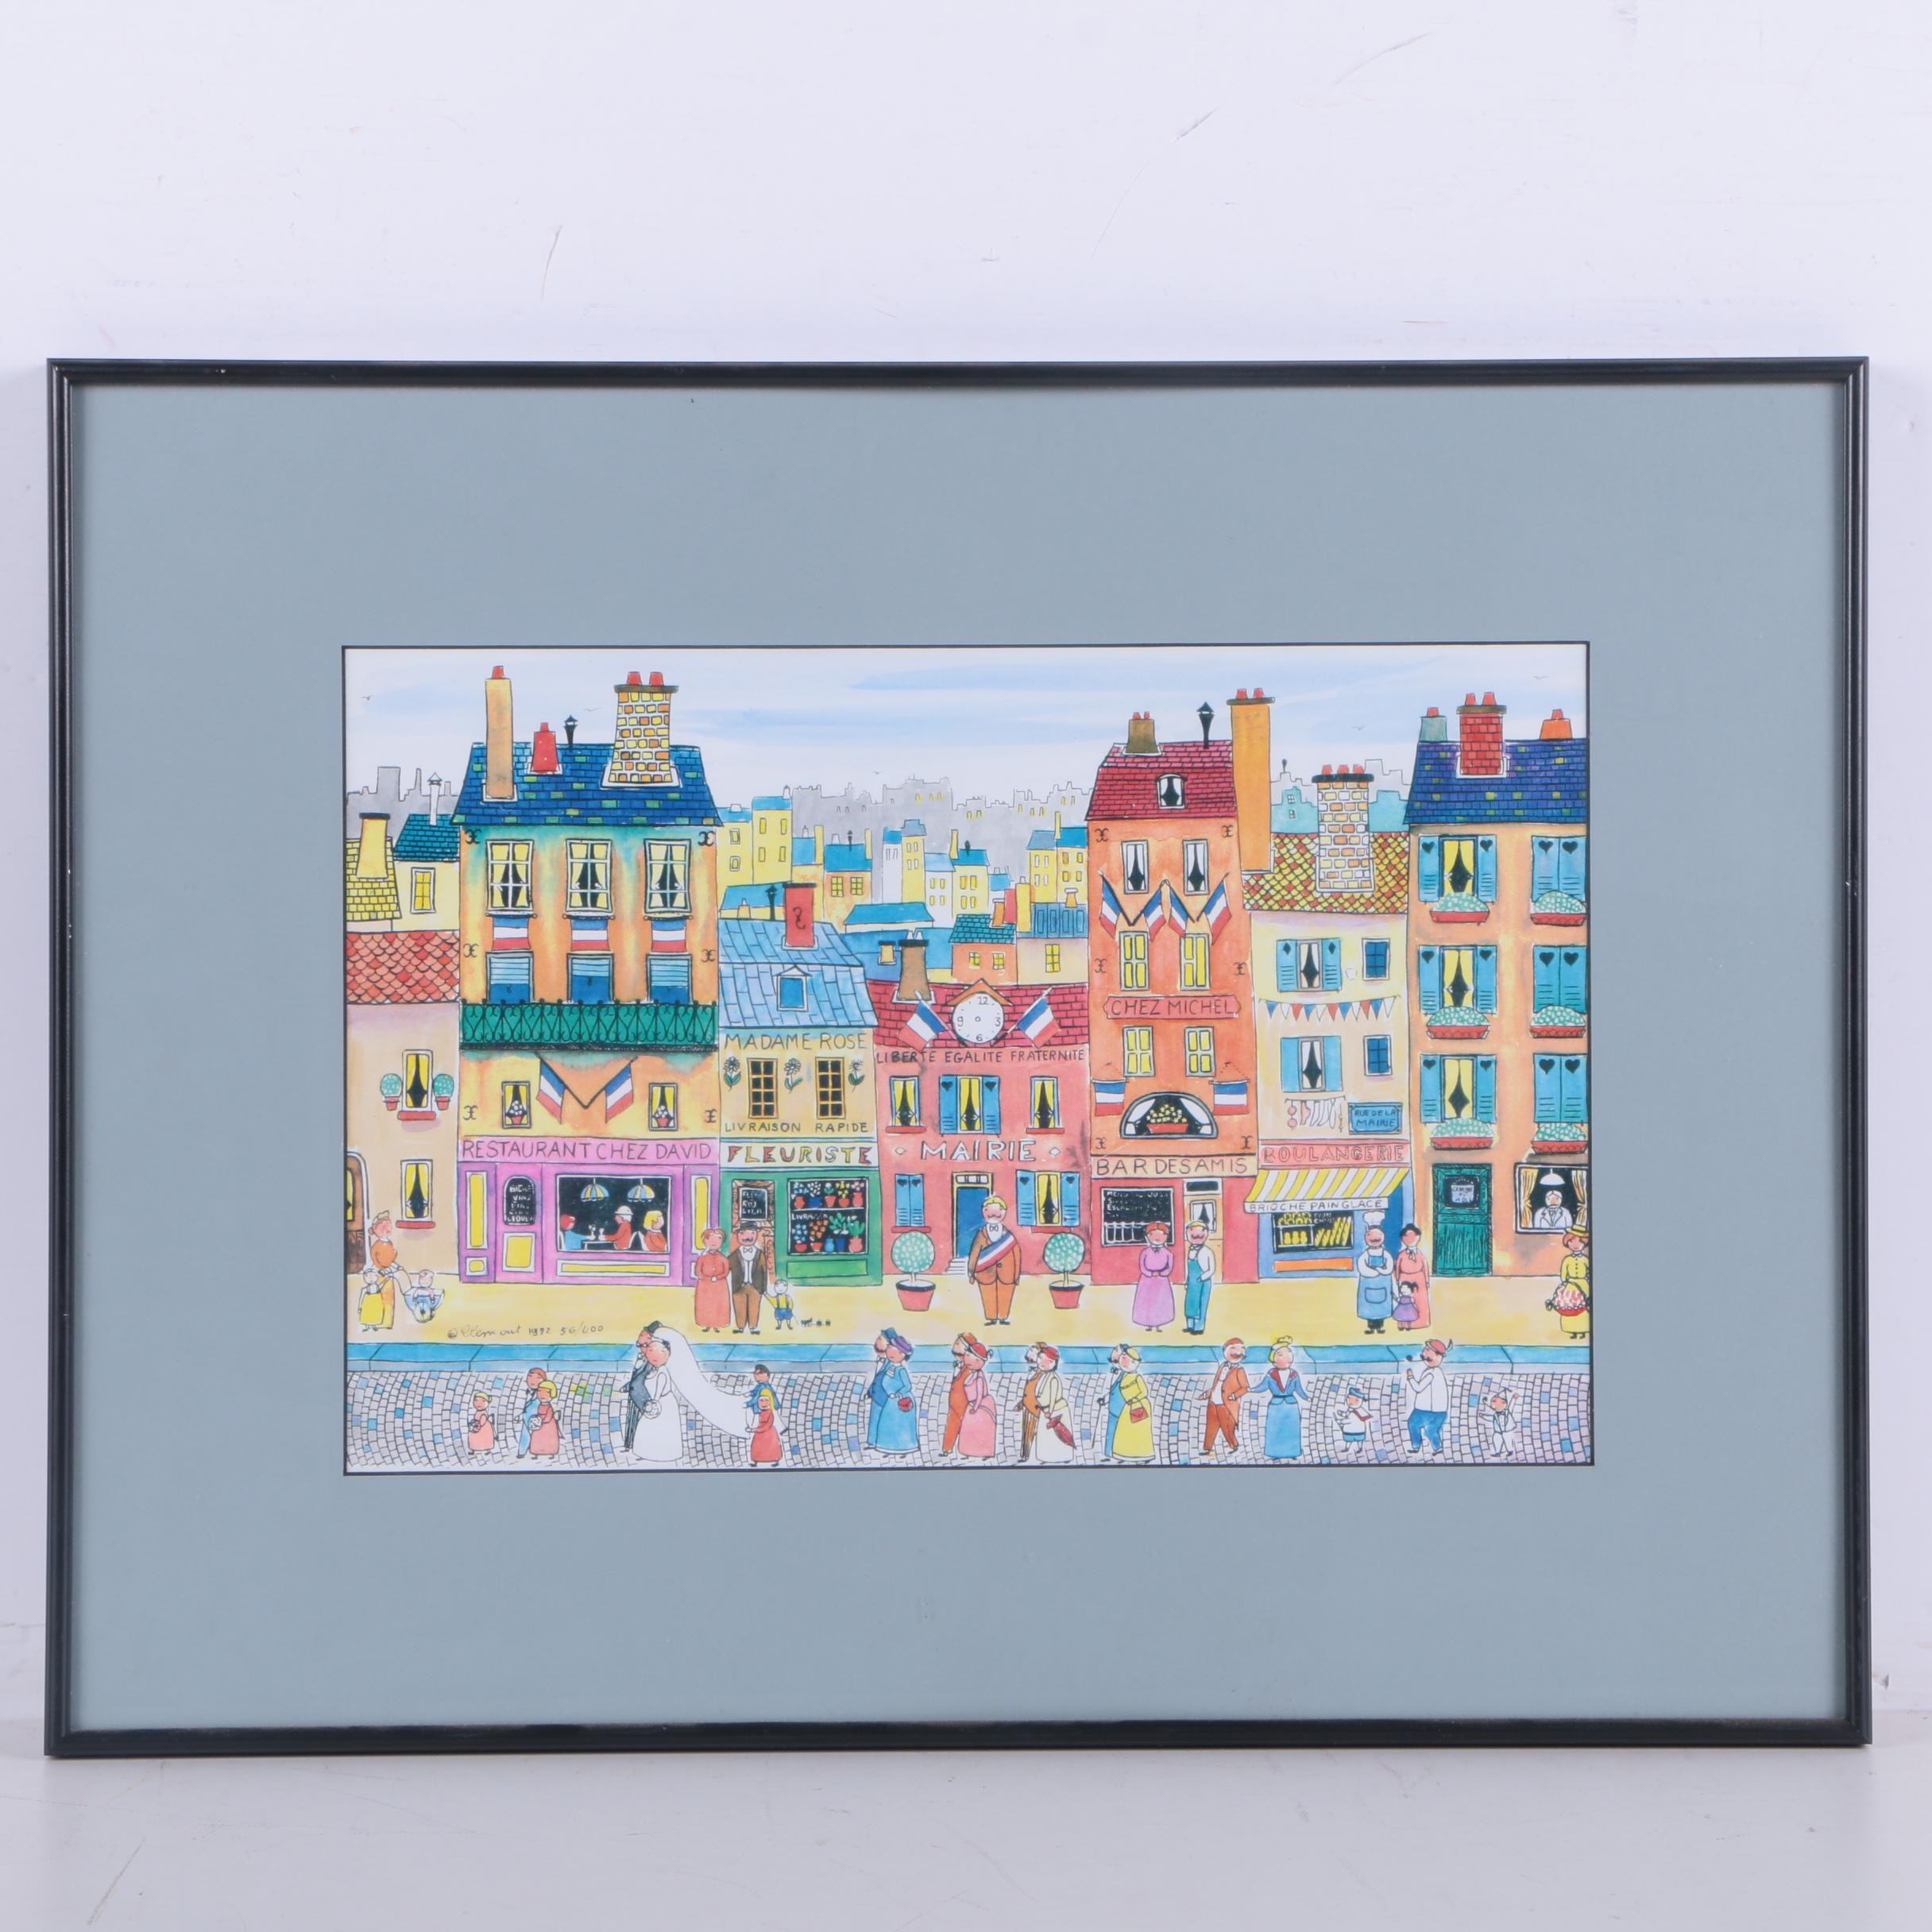 Limited Edition Giclee After Yvon Jeannot of Wedding in Paris Street